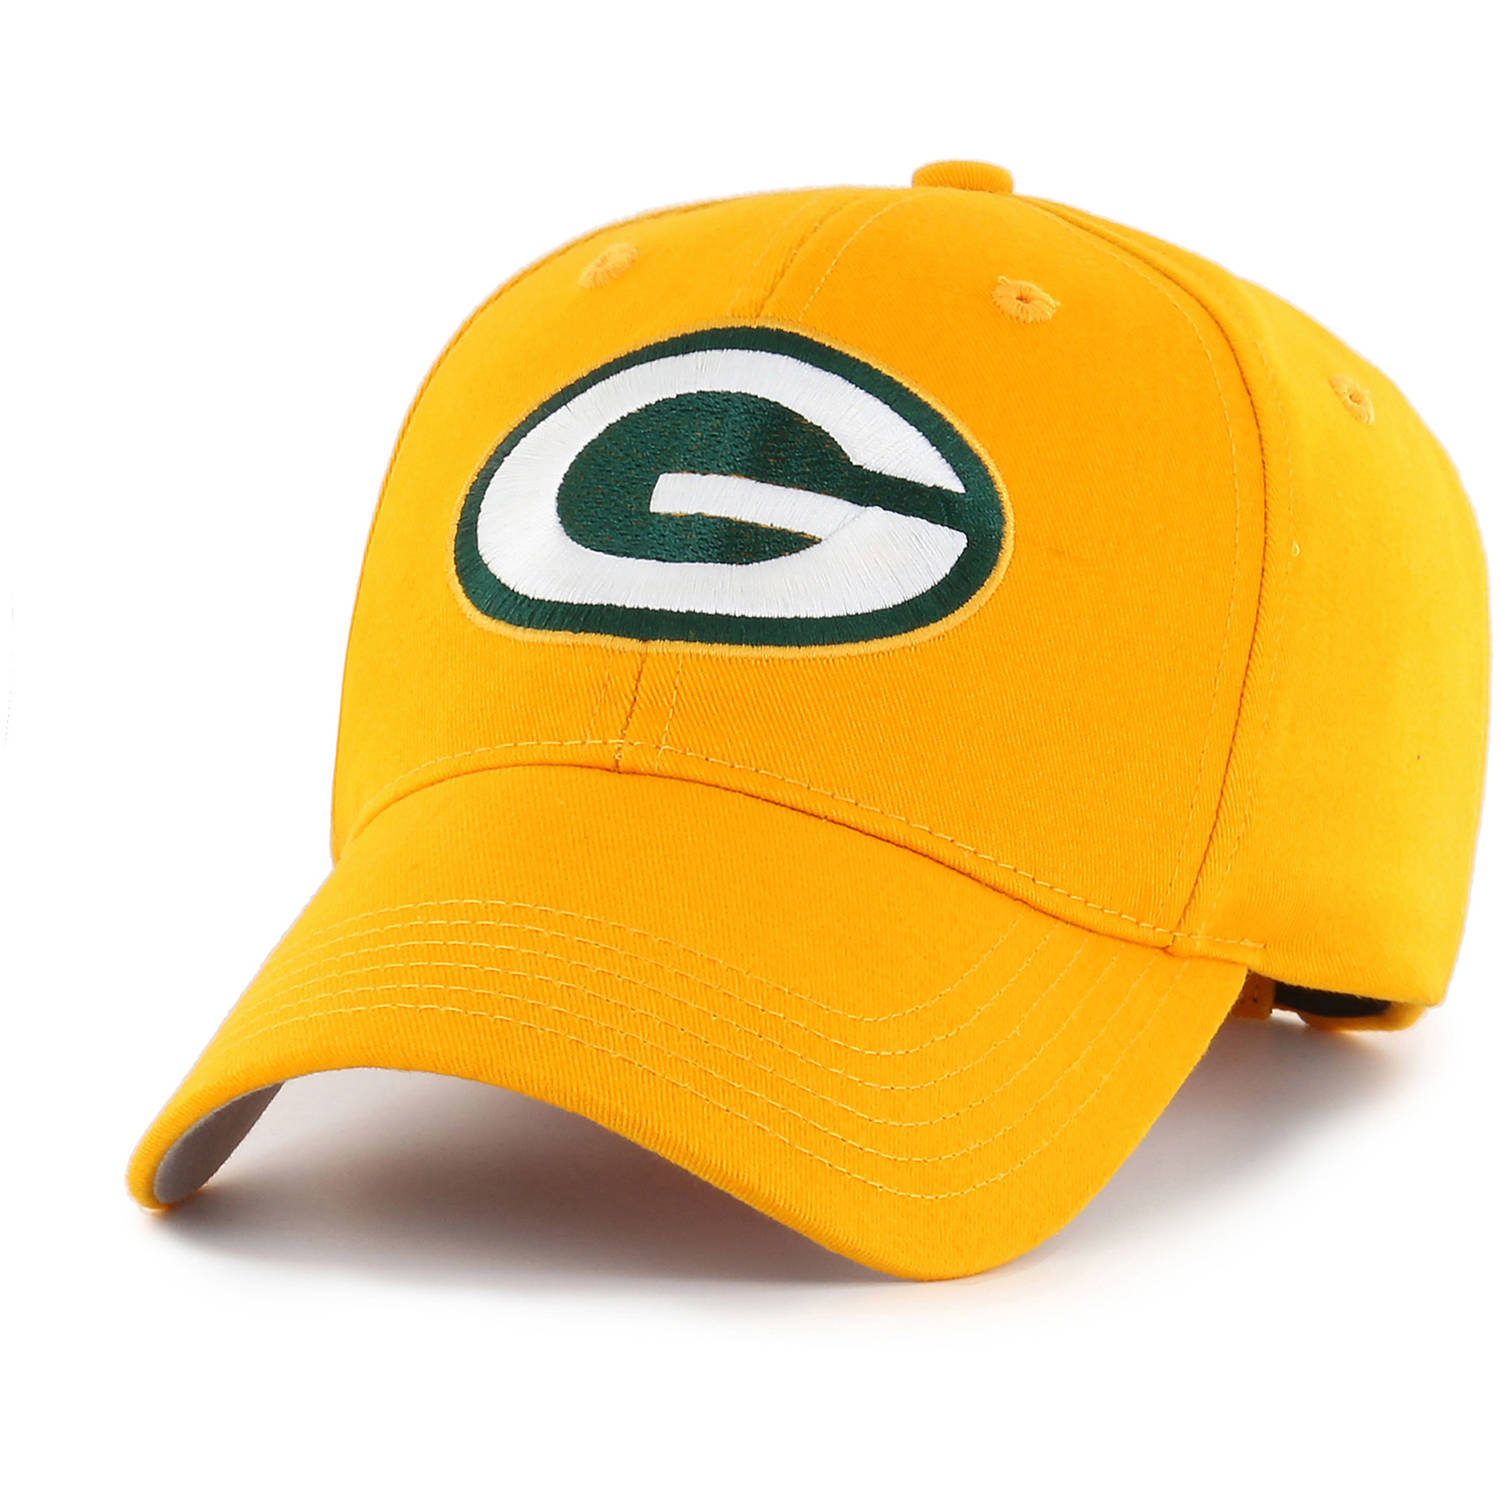 NFL Green Bay Packers Basic Cap Hat by Fan Favorite by Overstock